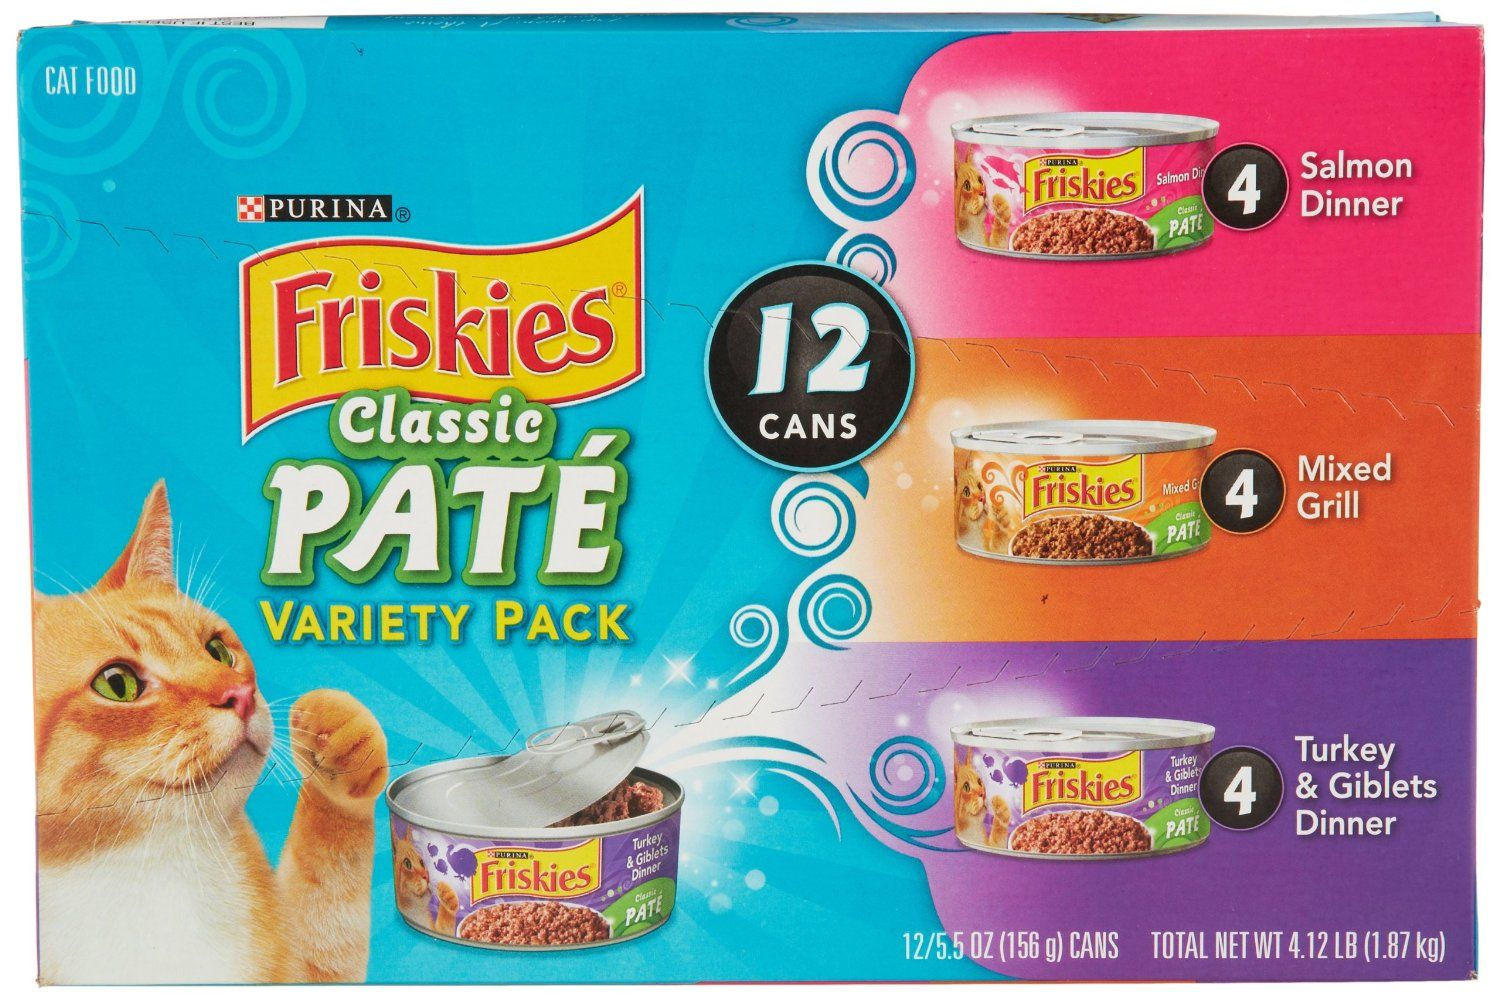 Friskies Classic Pate Variety Pack (12 Count, 5.5 Oz Each): Prime Pantry